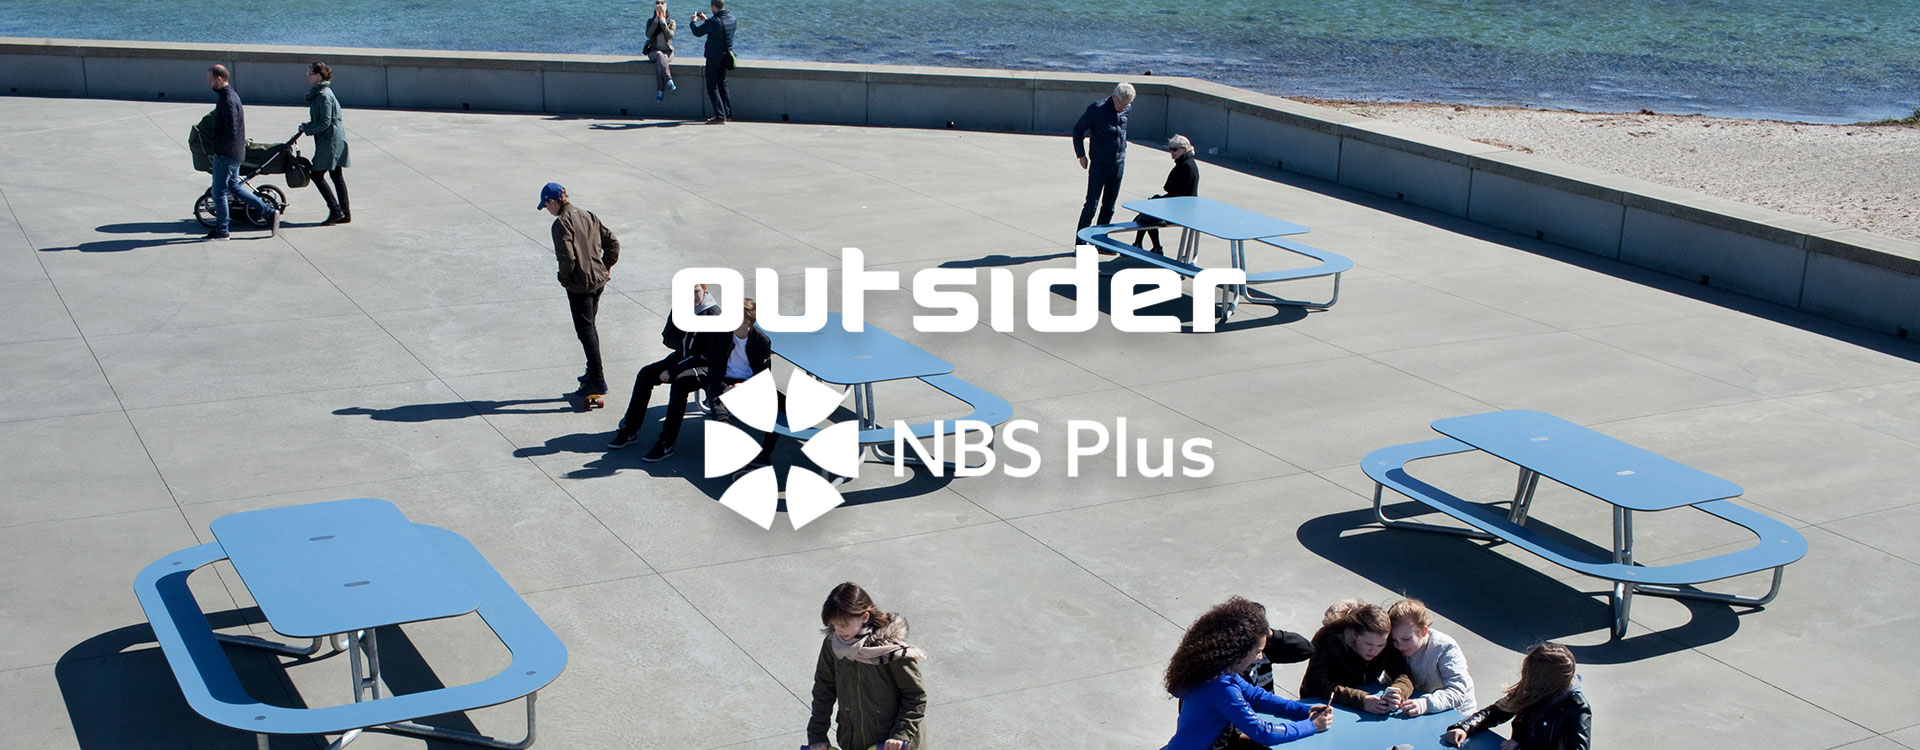 Out-sider products now on NBS Plus